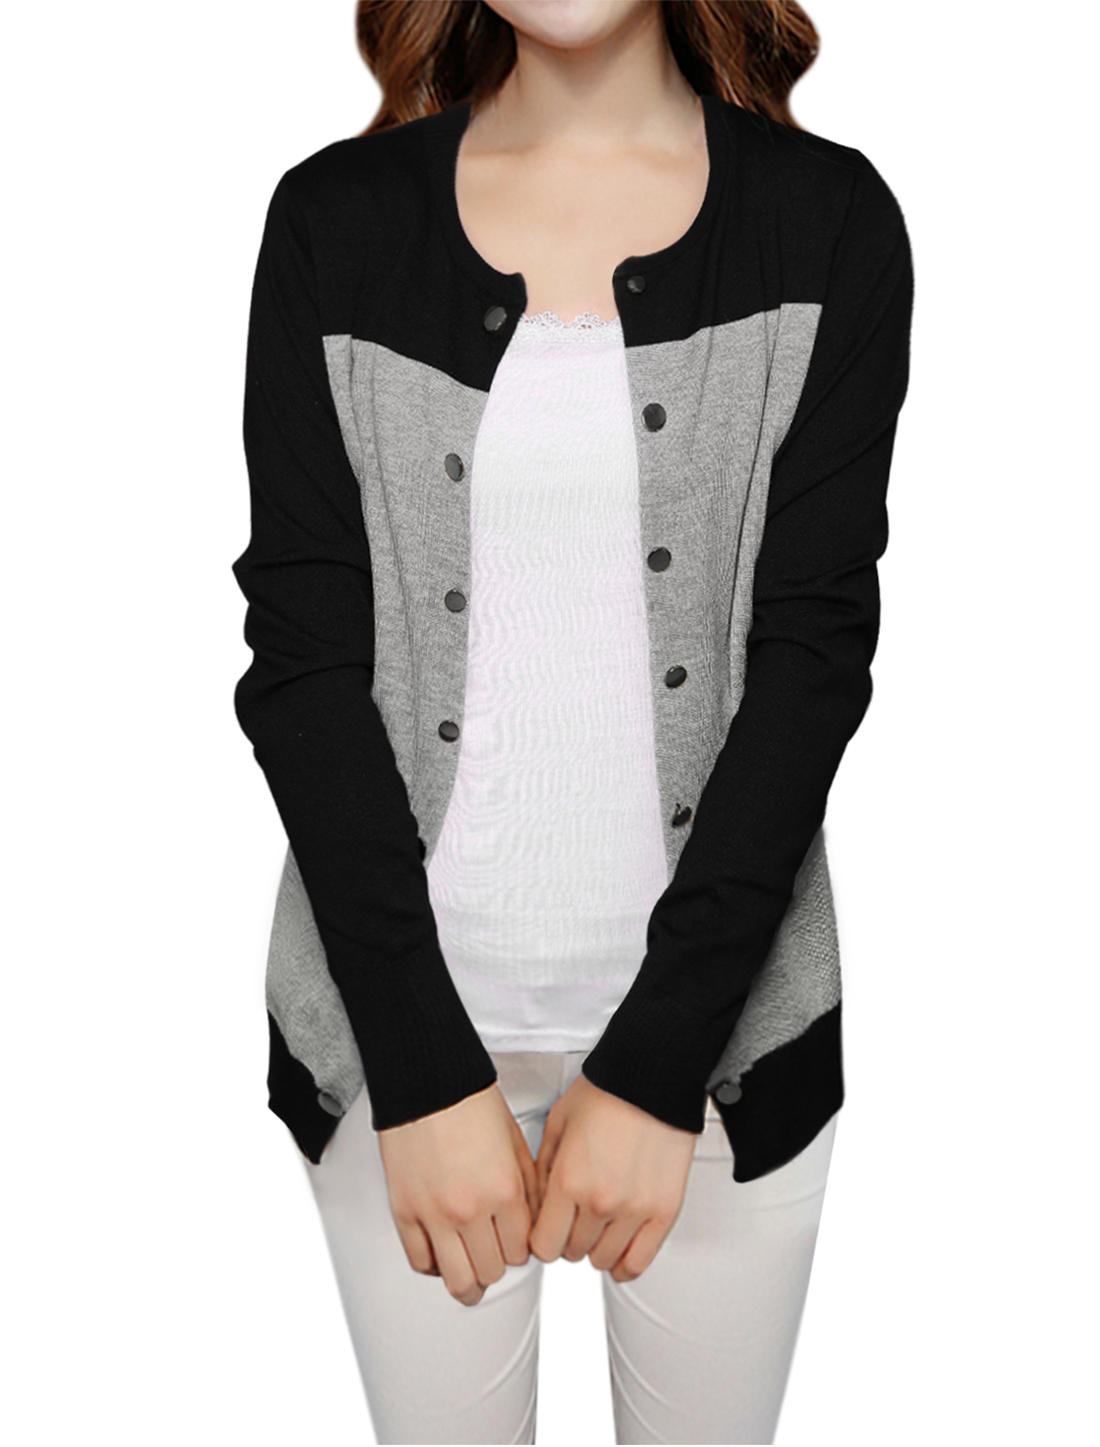 Women Color Block Round Neck Open Front Knit Cardigan Black Light Gray XL